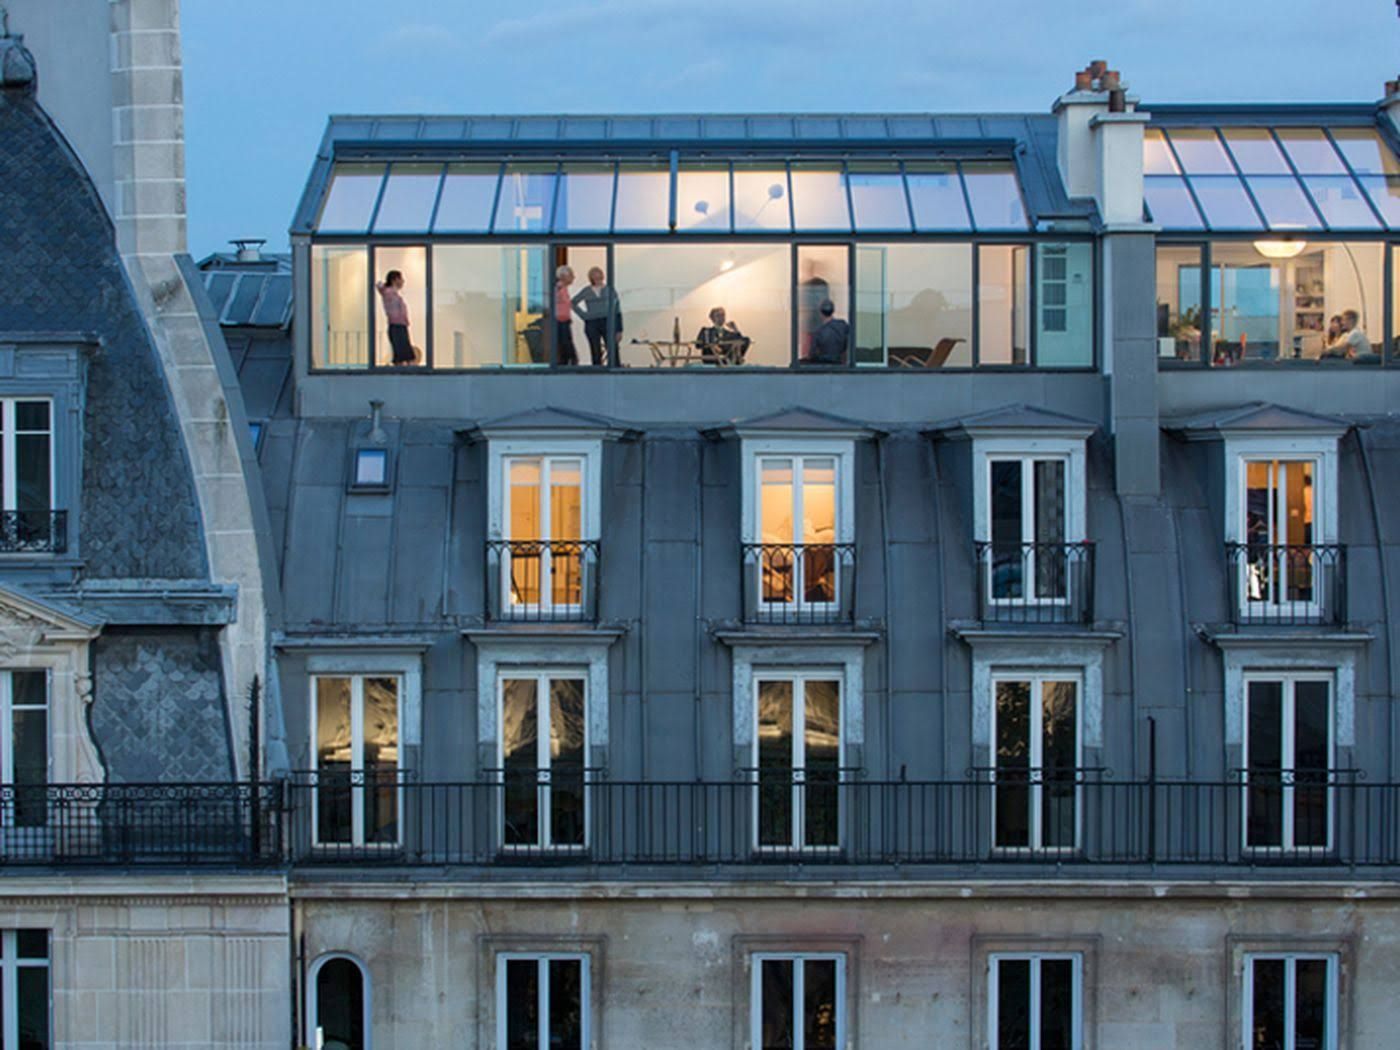 In Paris Architect Vincent Parreira Has Converted A Century Photography Studio Into Pair Of Rooftop Apartments Conceived As An Inhabited Observatory